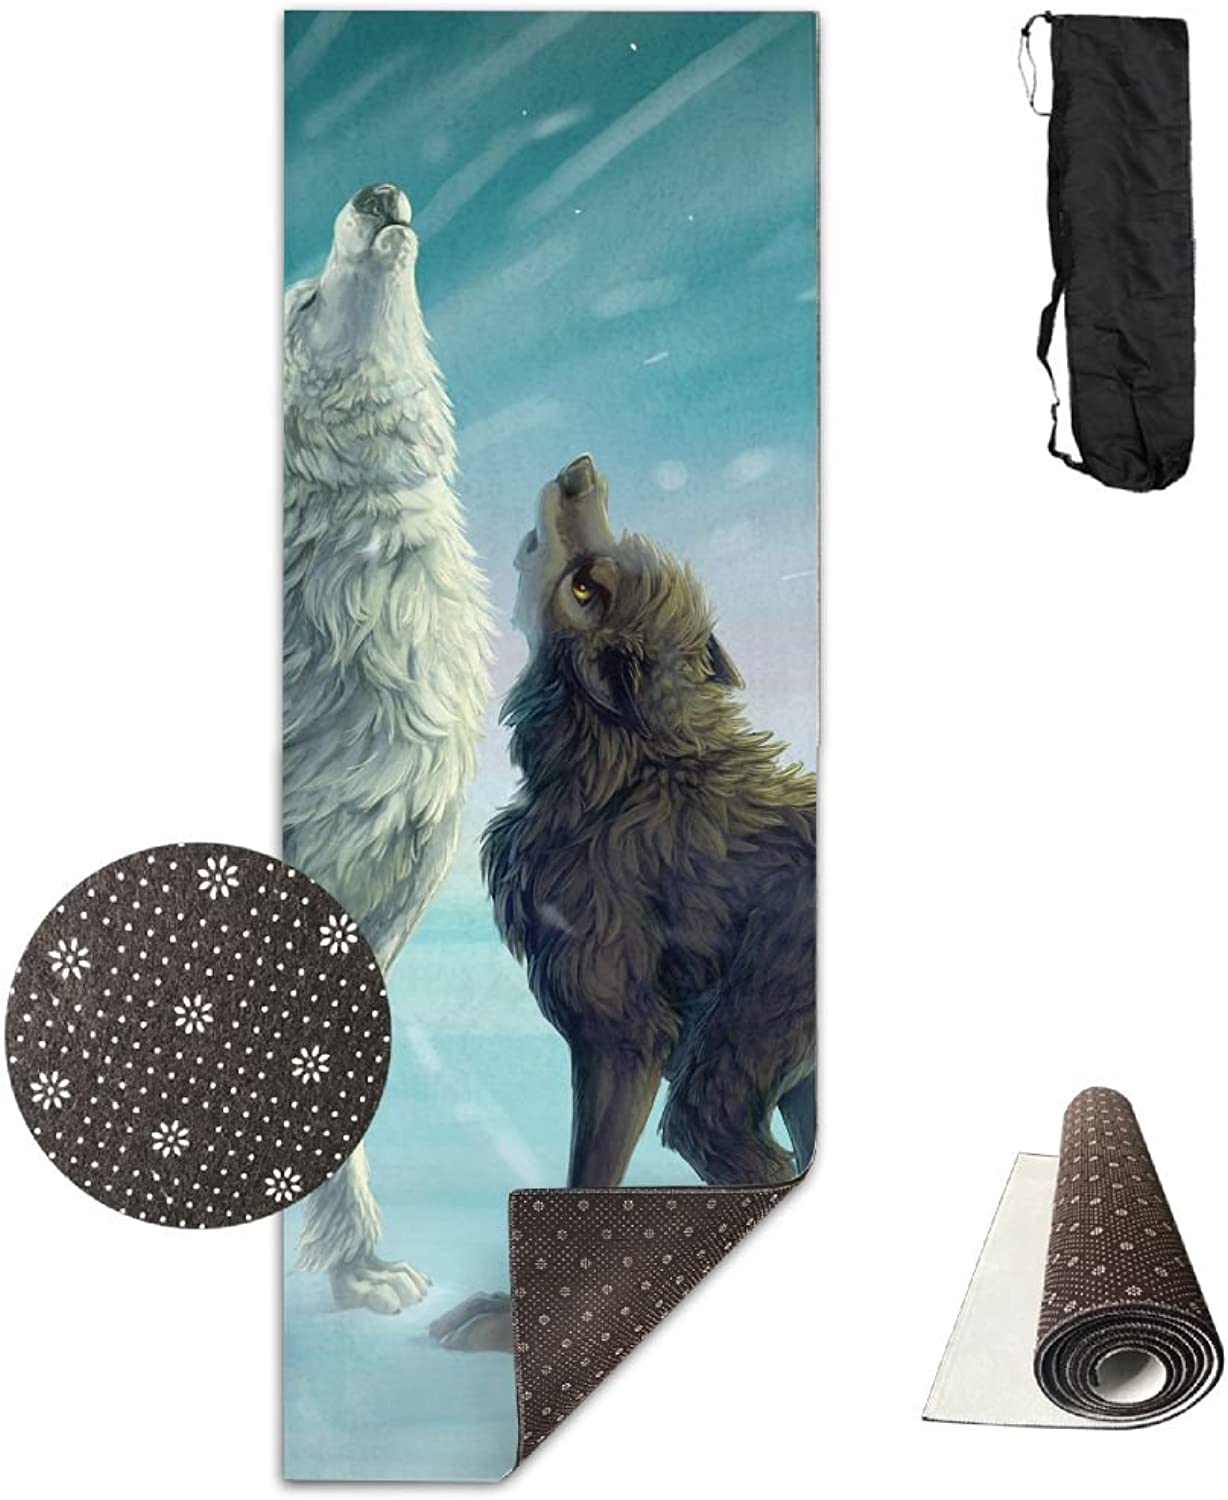 Gym Mat Cartoon Wolves Fitness High Density AntiTear Exercise Yoga Mat With Carrying Bag For Exercise,Pilates